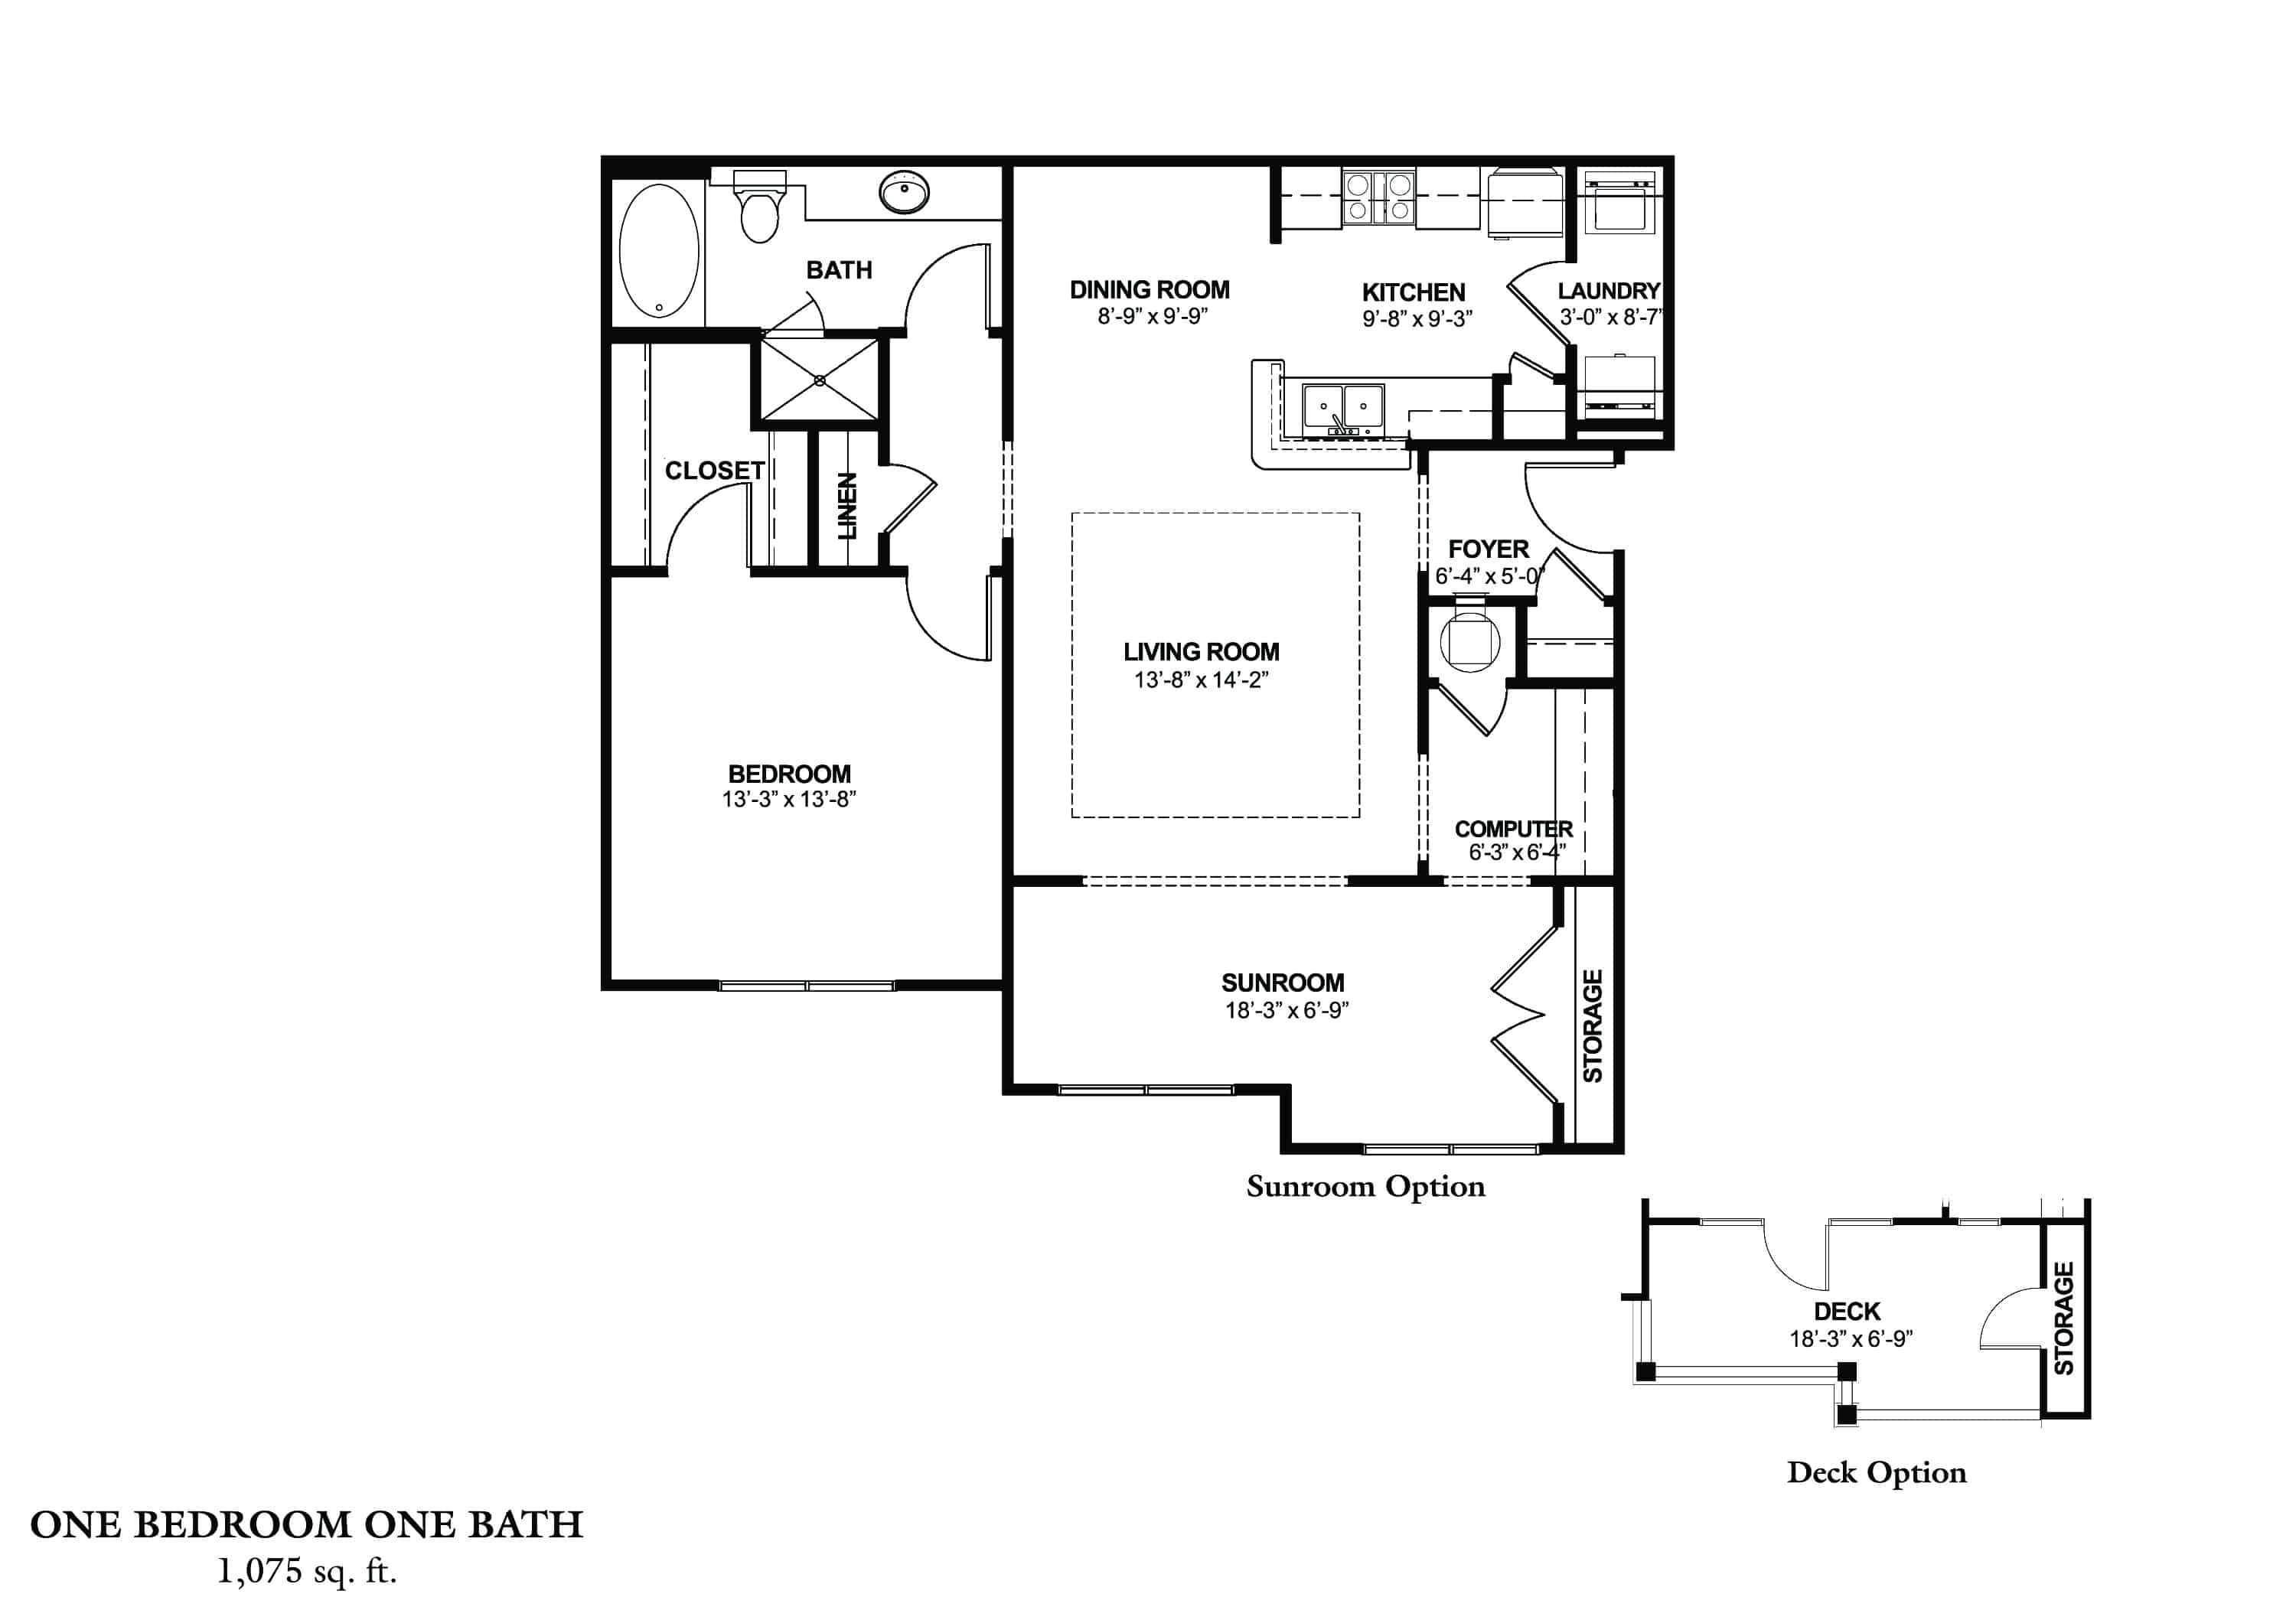 One Bedroom (ASR) - Phase II Approx. 1,075 sq. ft. with Sunroom Rent From $905 Beds 1 Baths 1